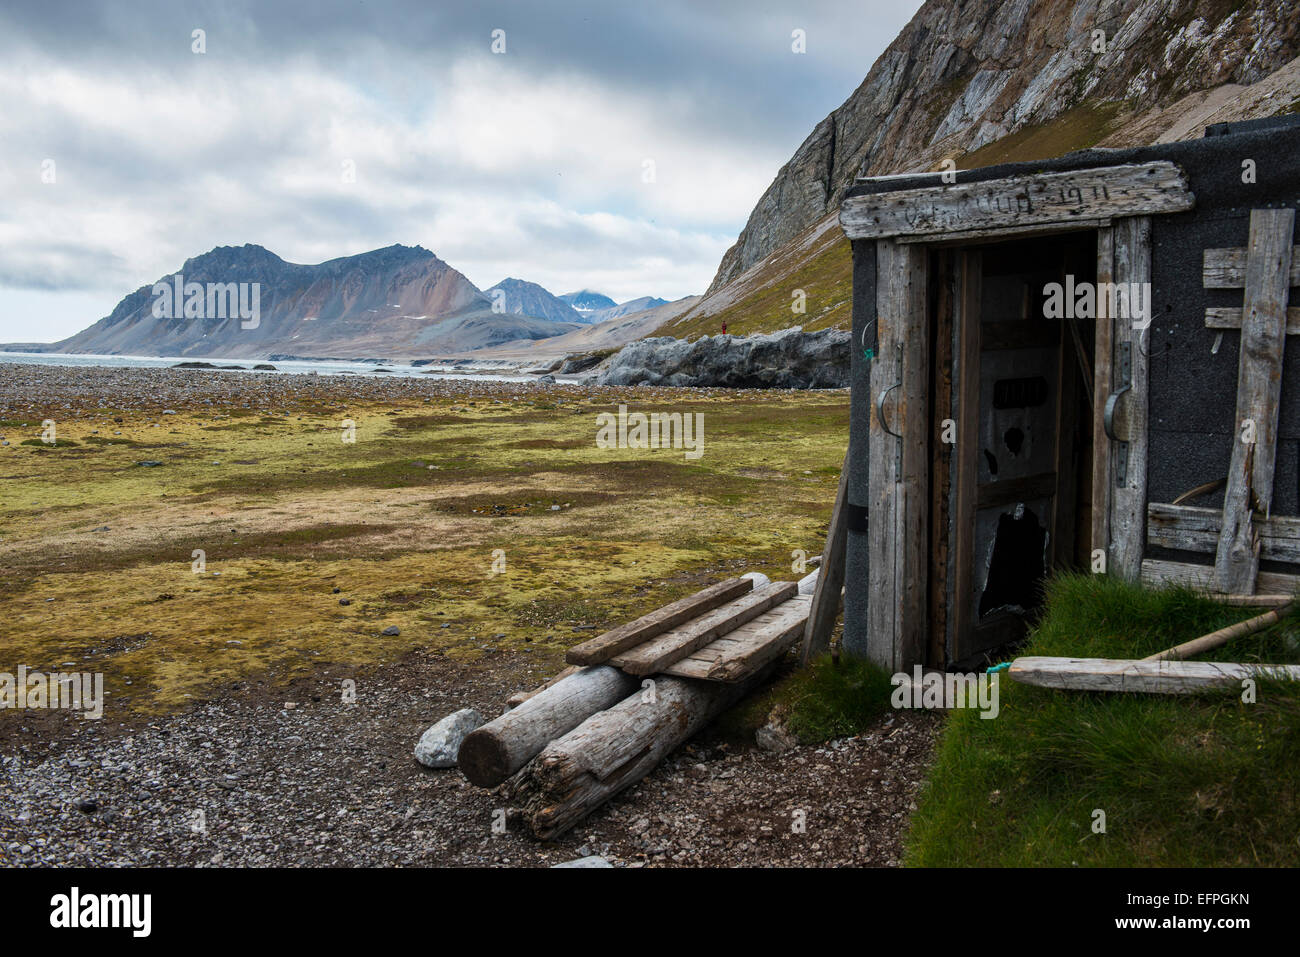 Abandoned hut on Alkhornet with a huge rock in the background, Svalbard, Arctic - Stock Image